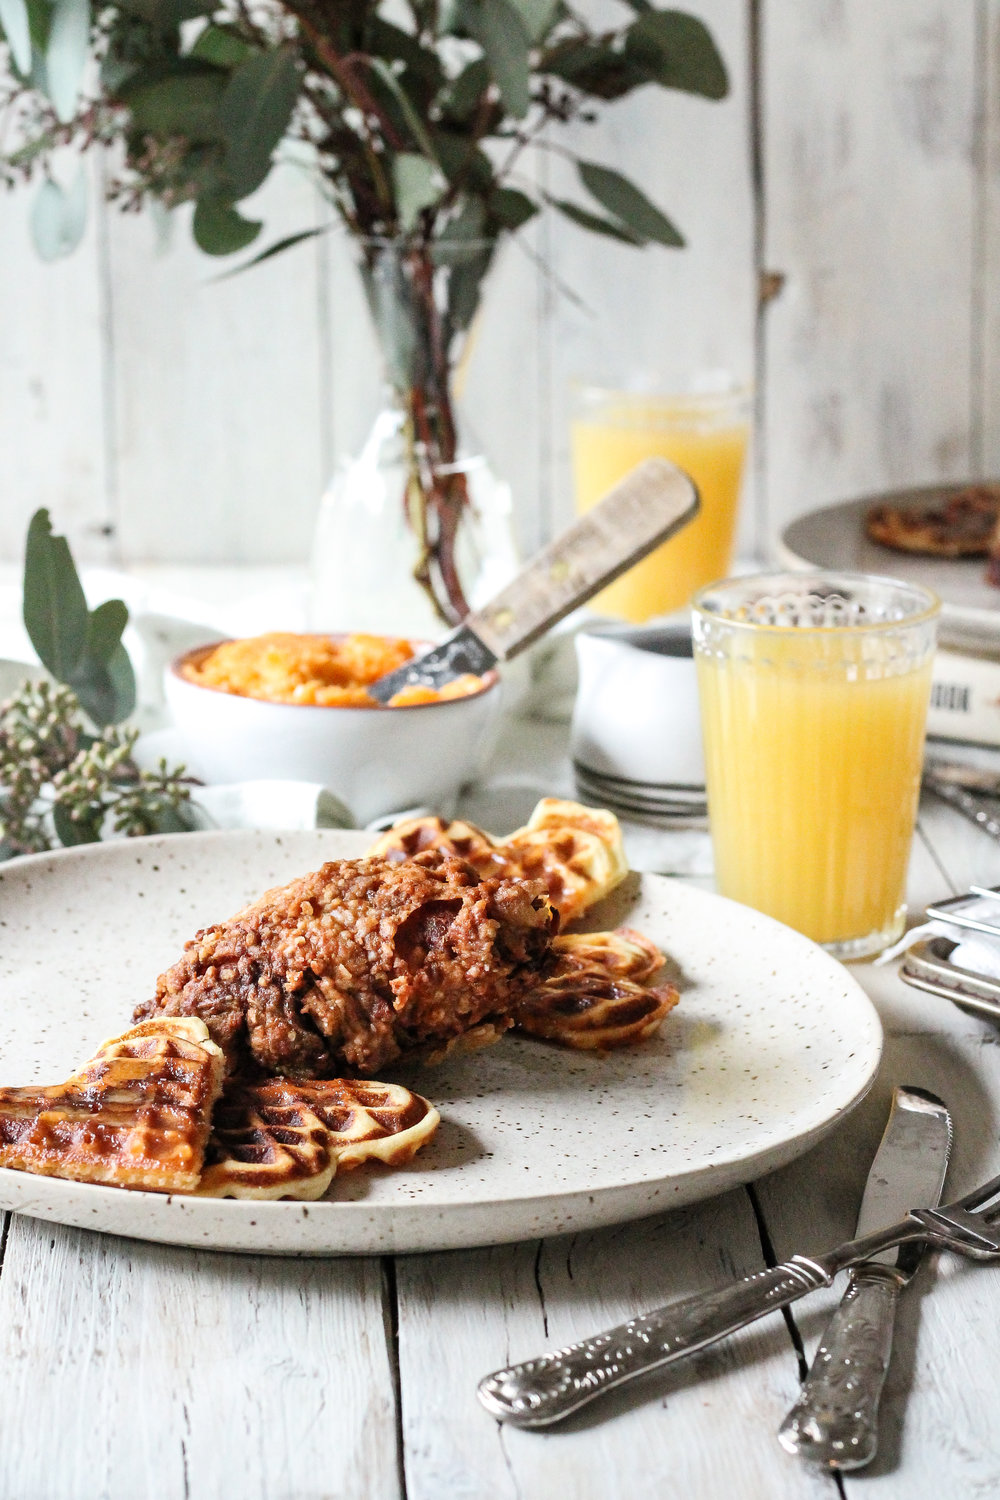 CHICKEN & WAFFLES with HOT HONEY BUTTER make the perfect breakfast, brunch, or dinner!!  Find the recipe on www.pedanticfoodie.com!